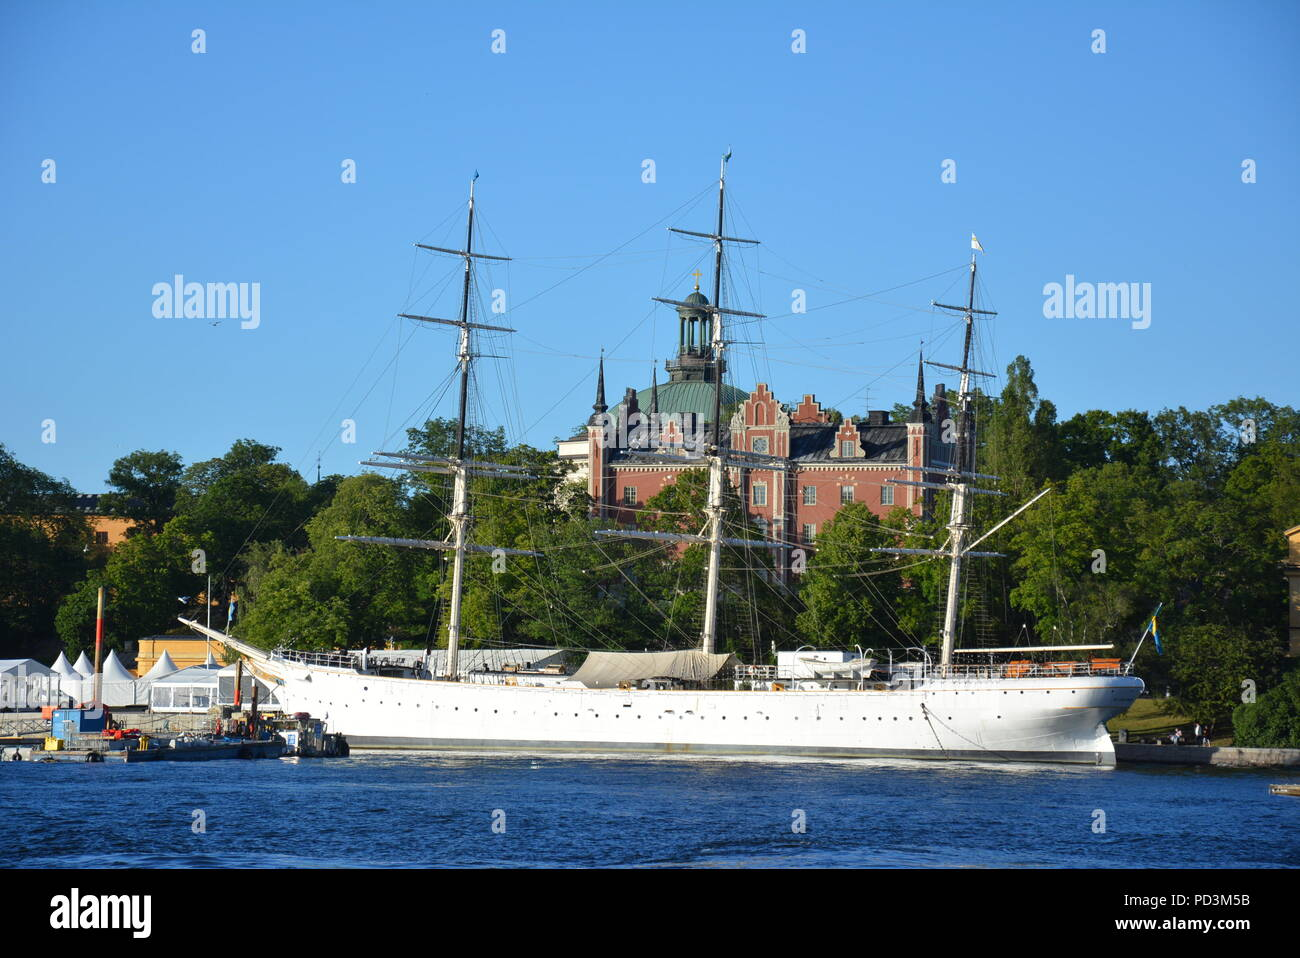 AF Chapman, a fully rigged steel ship, moored at Skeppsholmen, Stockholm, Sweden Stock Photo